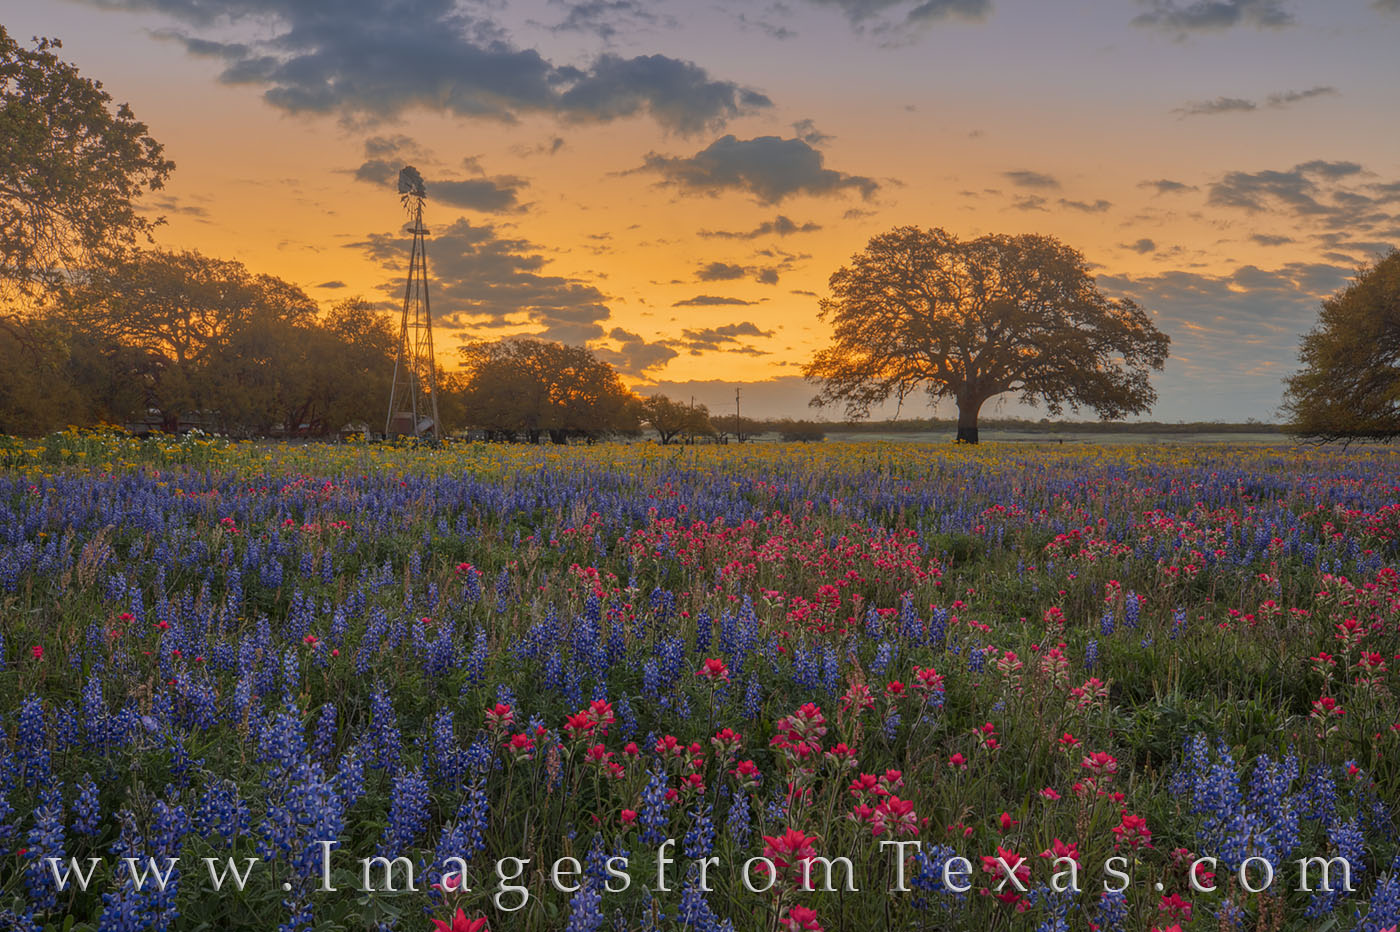 bluebonnets, paintbrush, windmill, sunrise, poteet, wildflowers, morning, spring, yellow, gold, orange, peace, photo